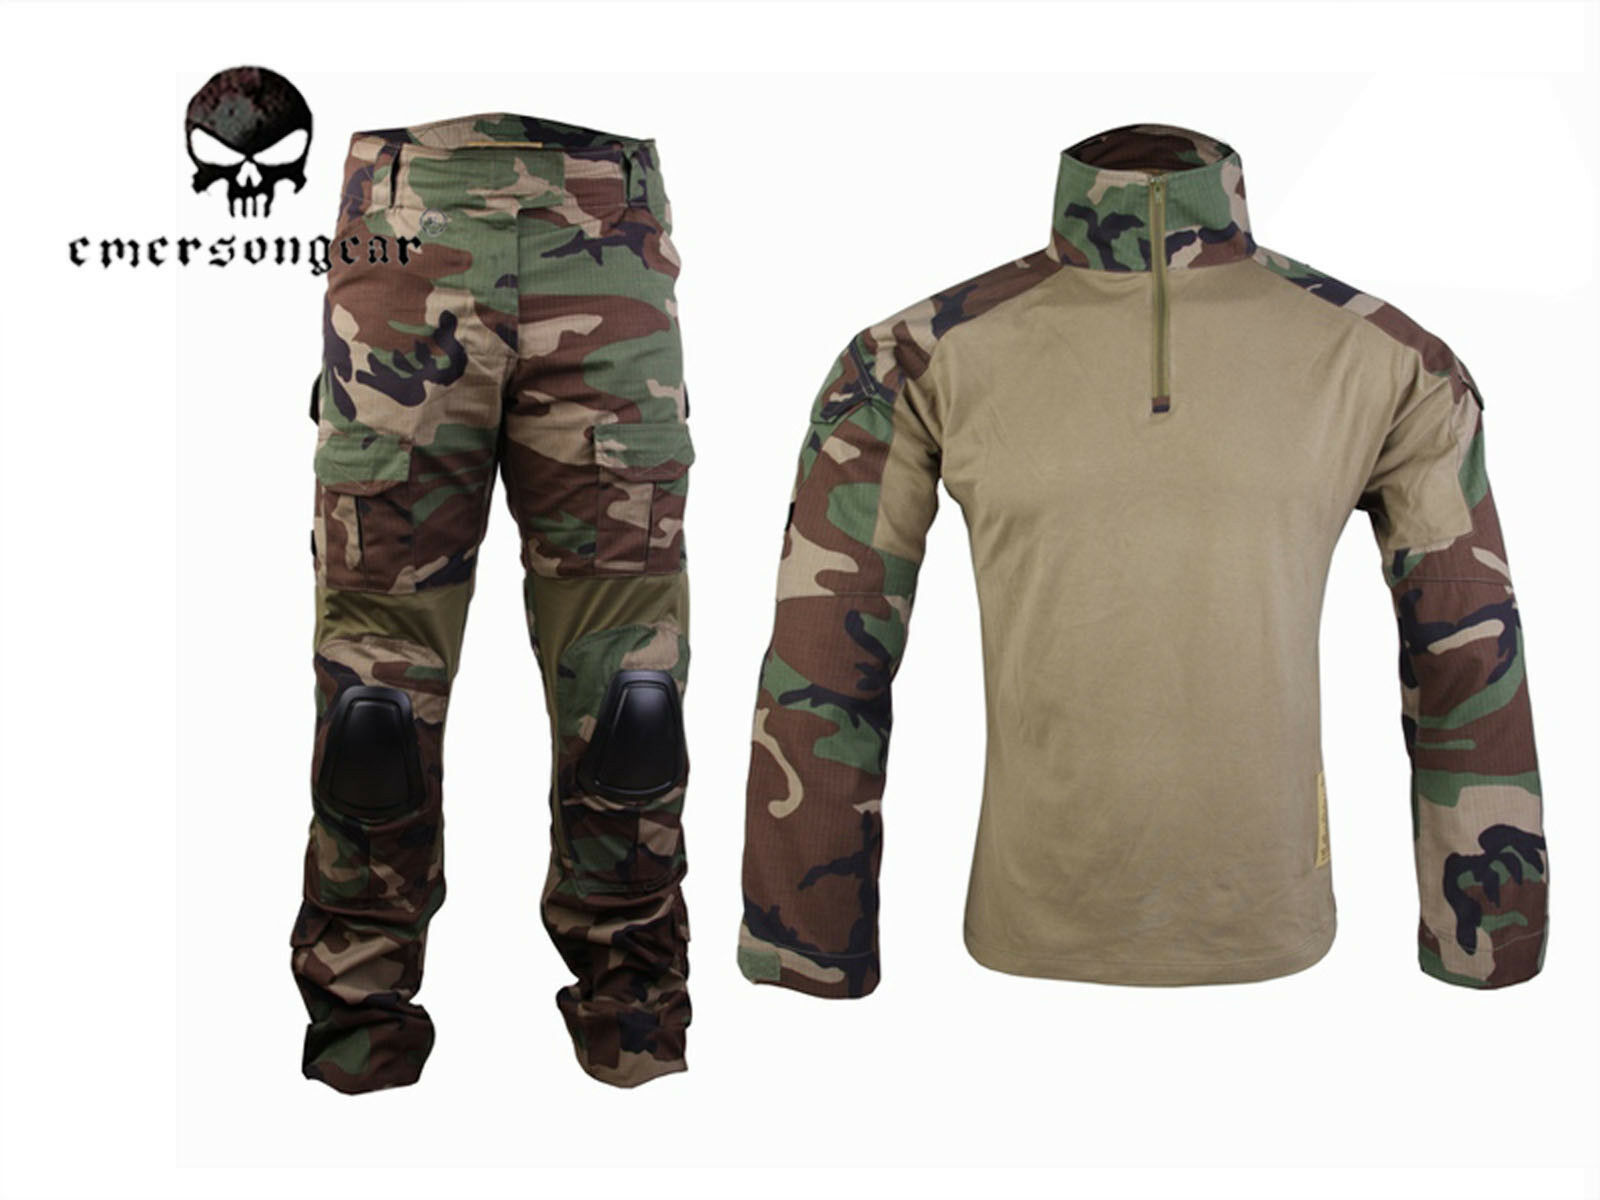 EMERSON Gen2  Cype Style Combat Uniform Tactical Hunting BDU Woodland  novelty items